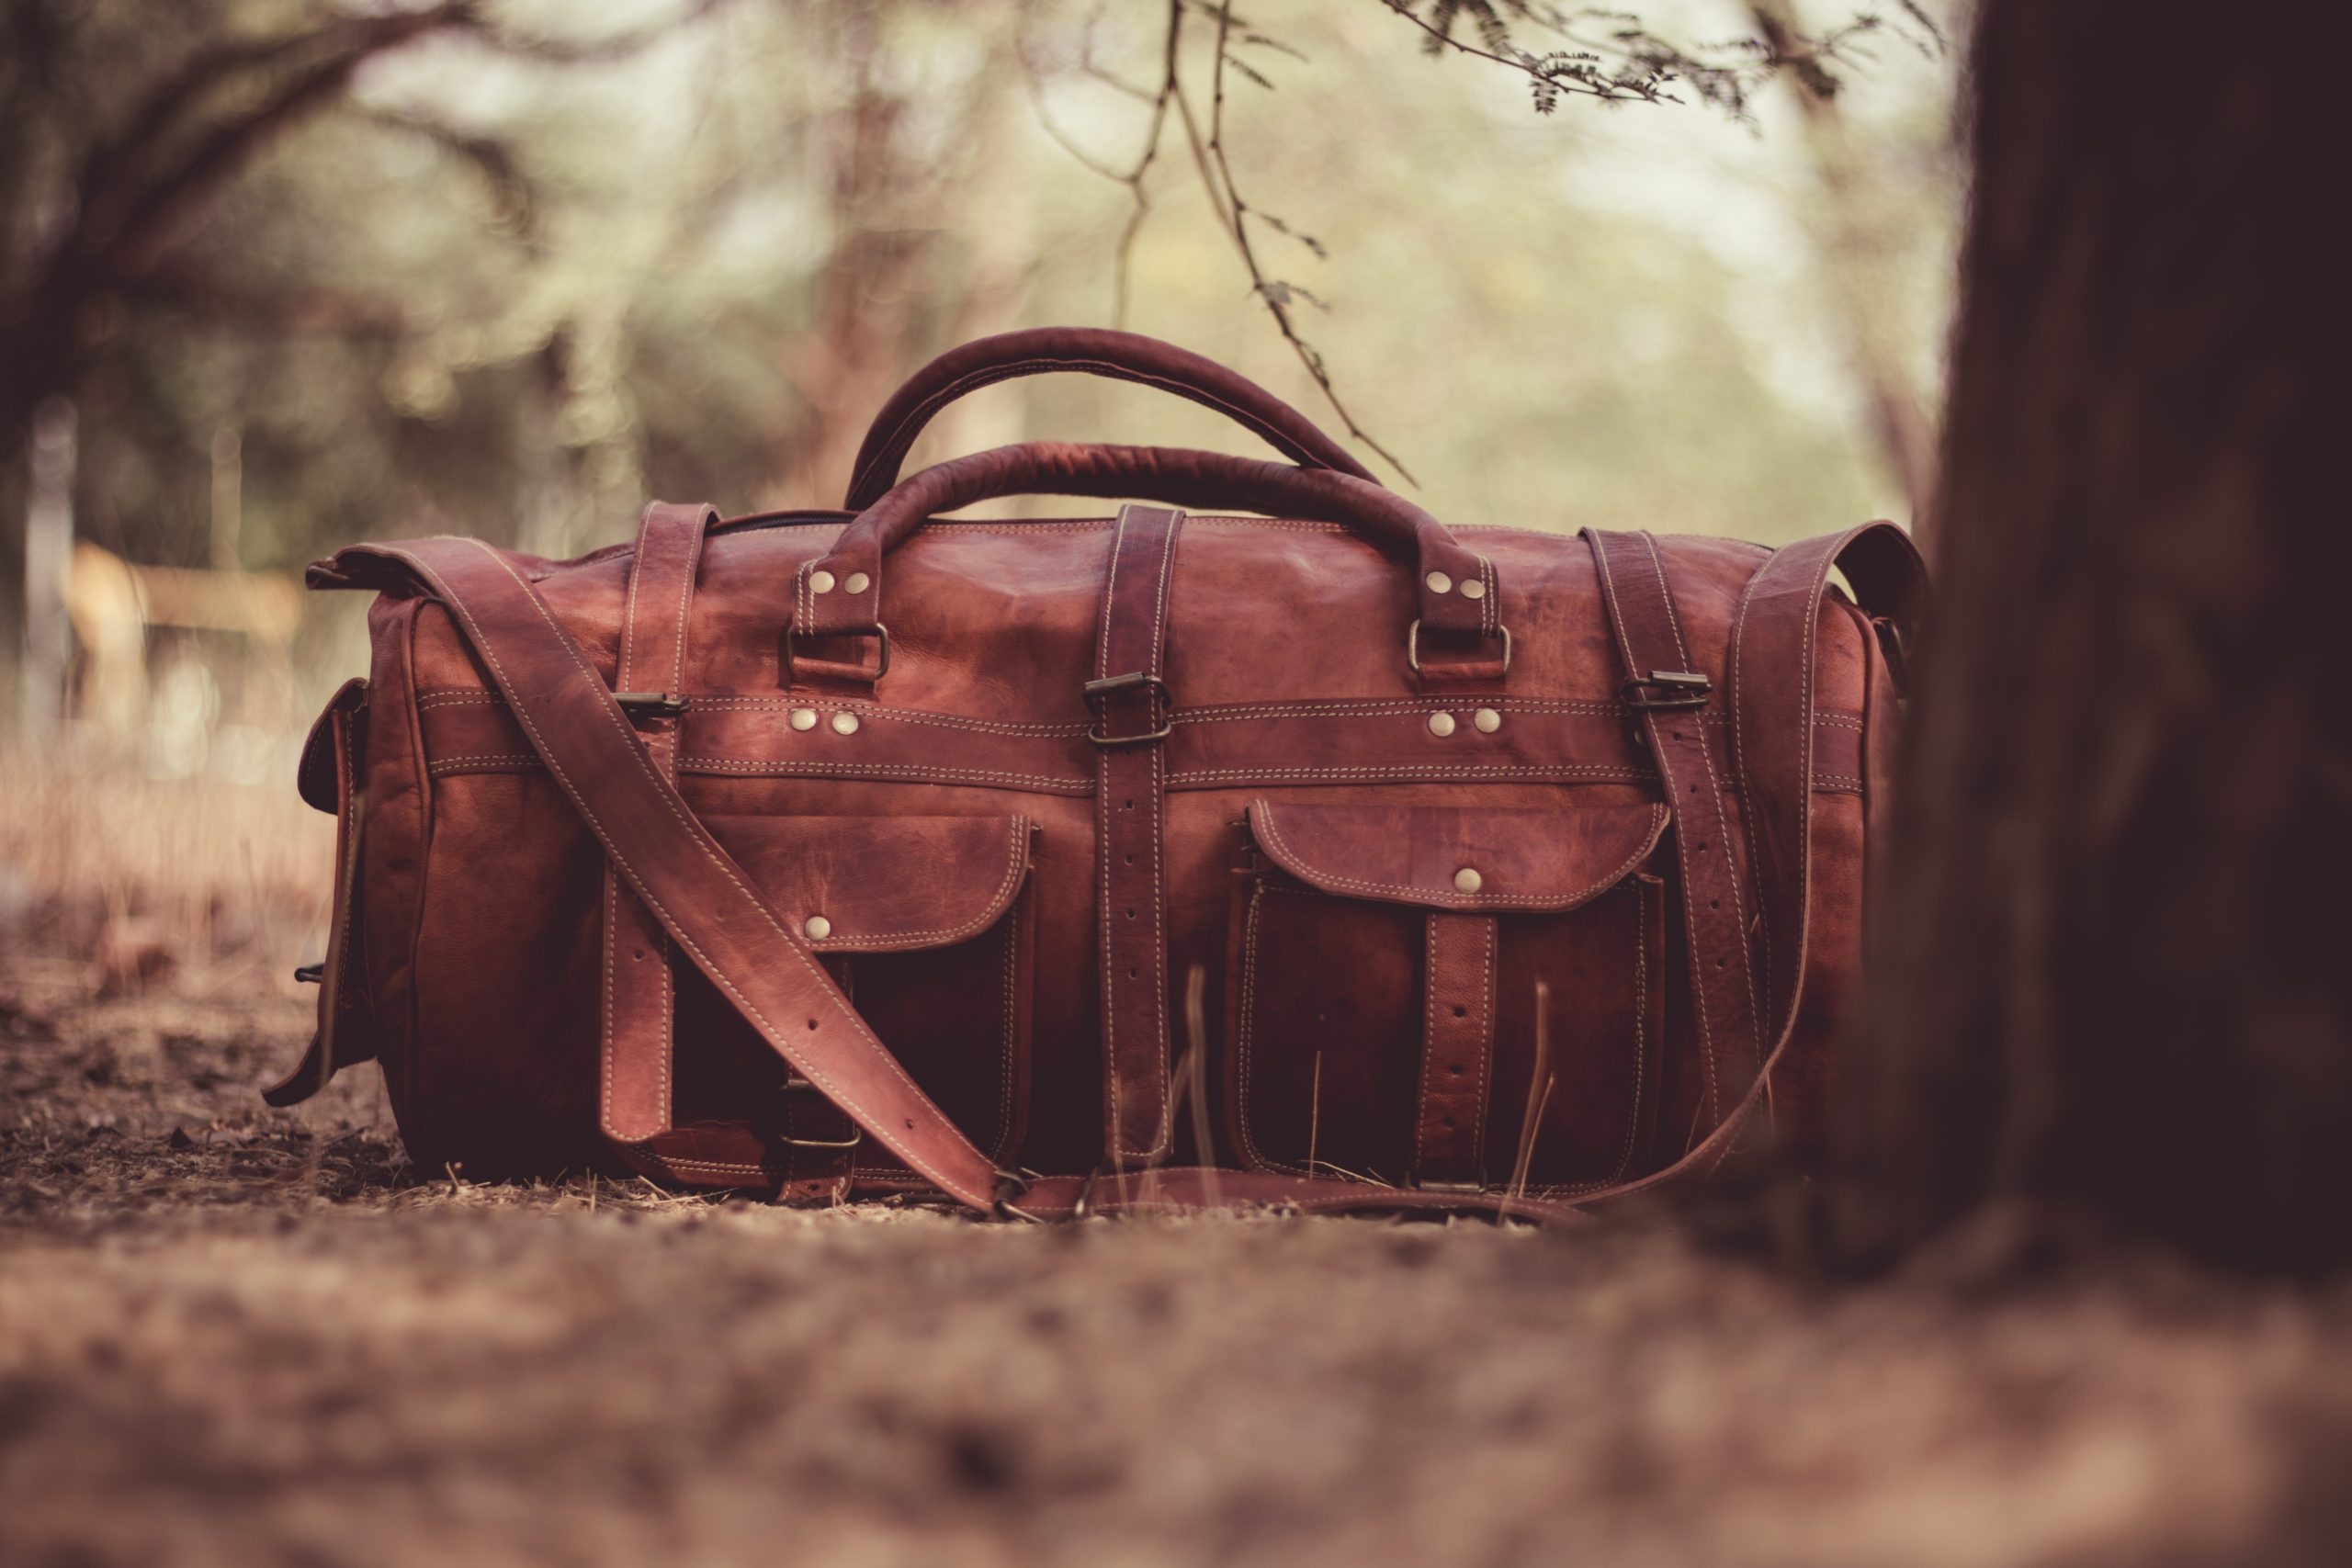 Best Luggage for international travel in 2020 - Backpack or suitcase